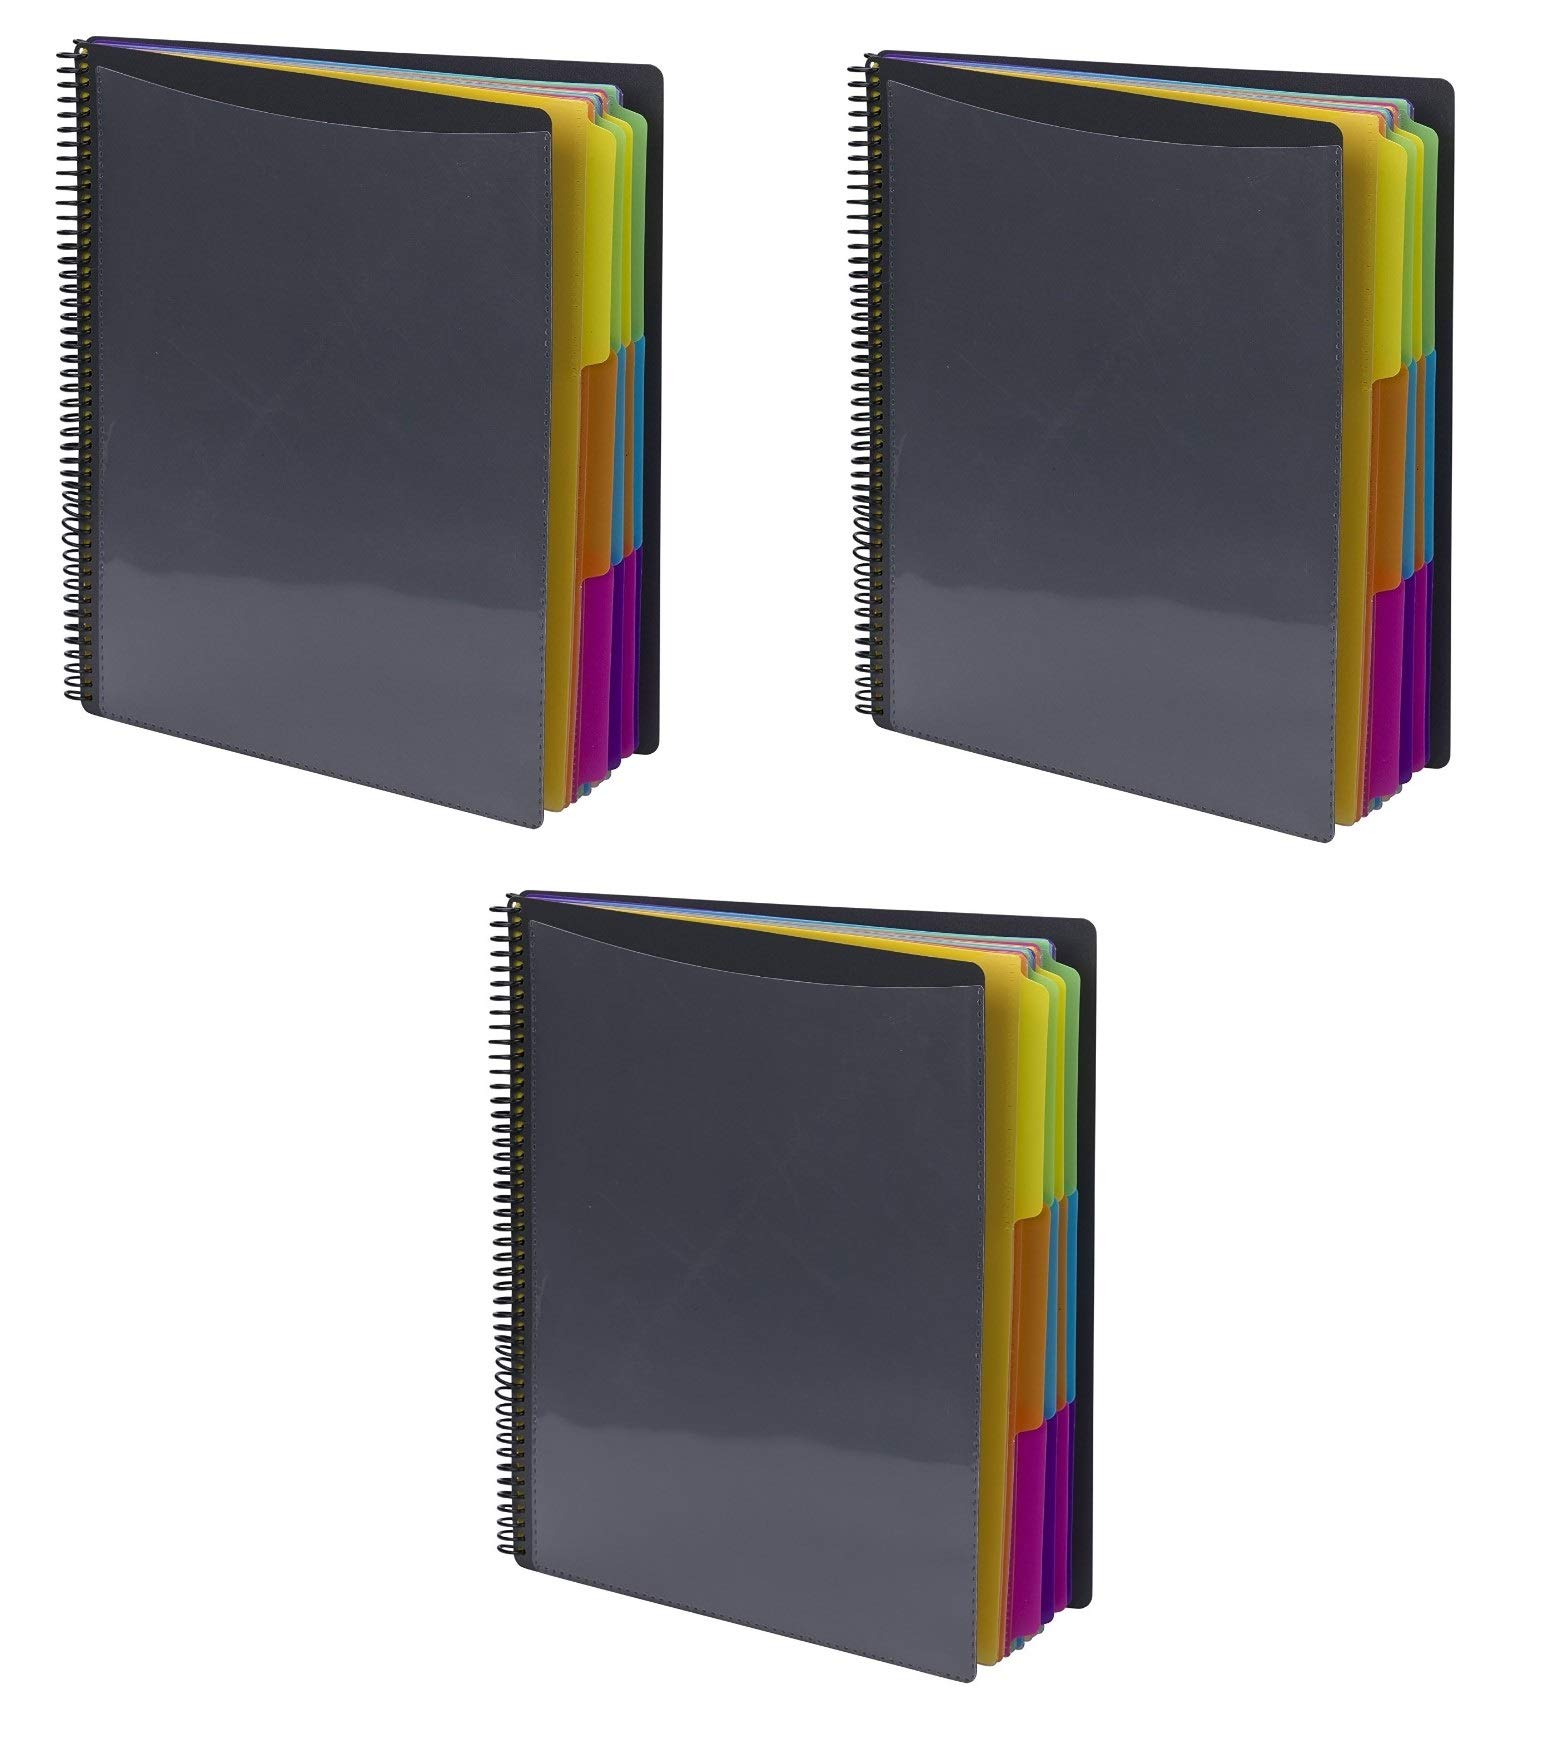 Smead 24 Pocket Poly Project Organizer, Letter Size, 1/3-Cut tab, Gray with Bright Colors, 3 Pack (89206)